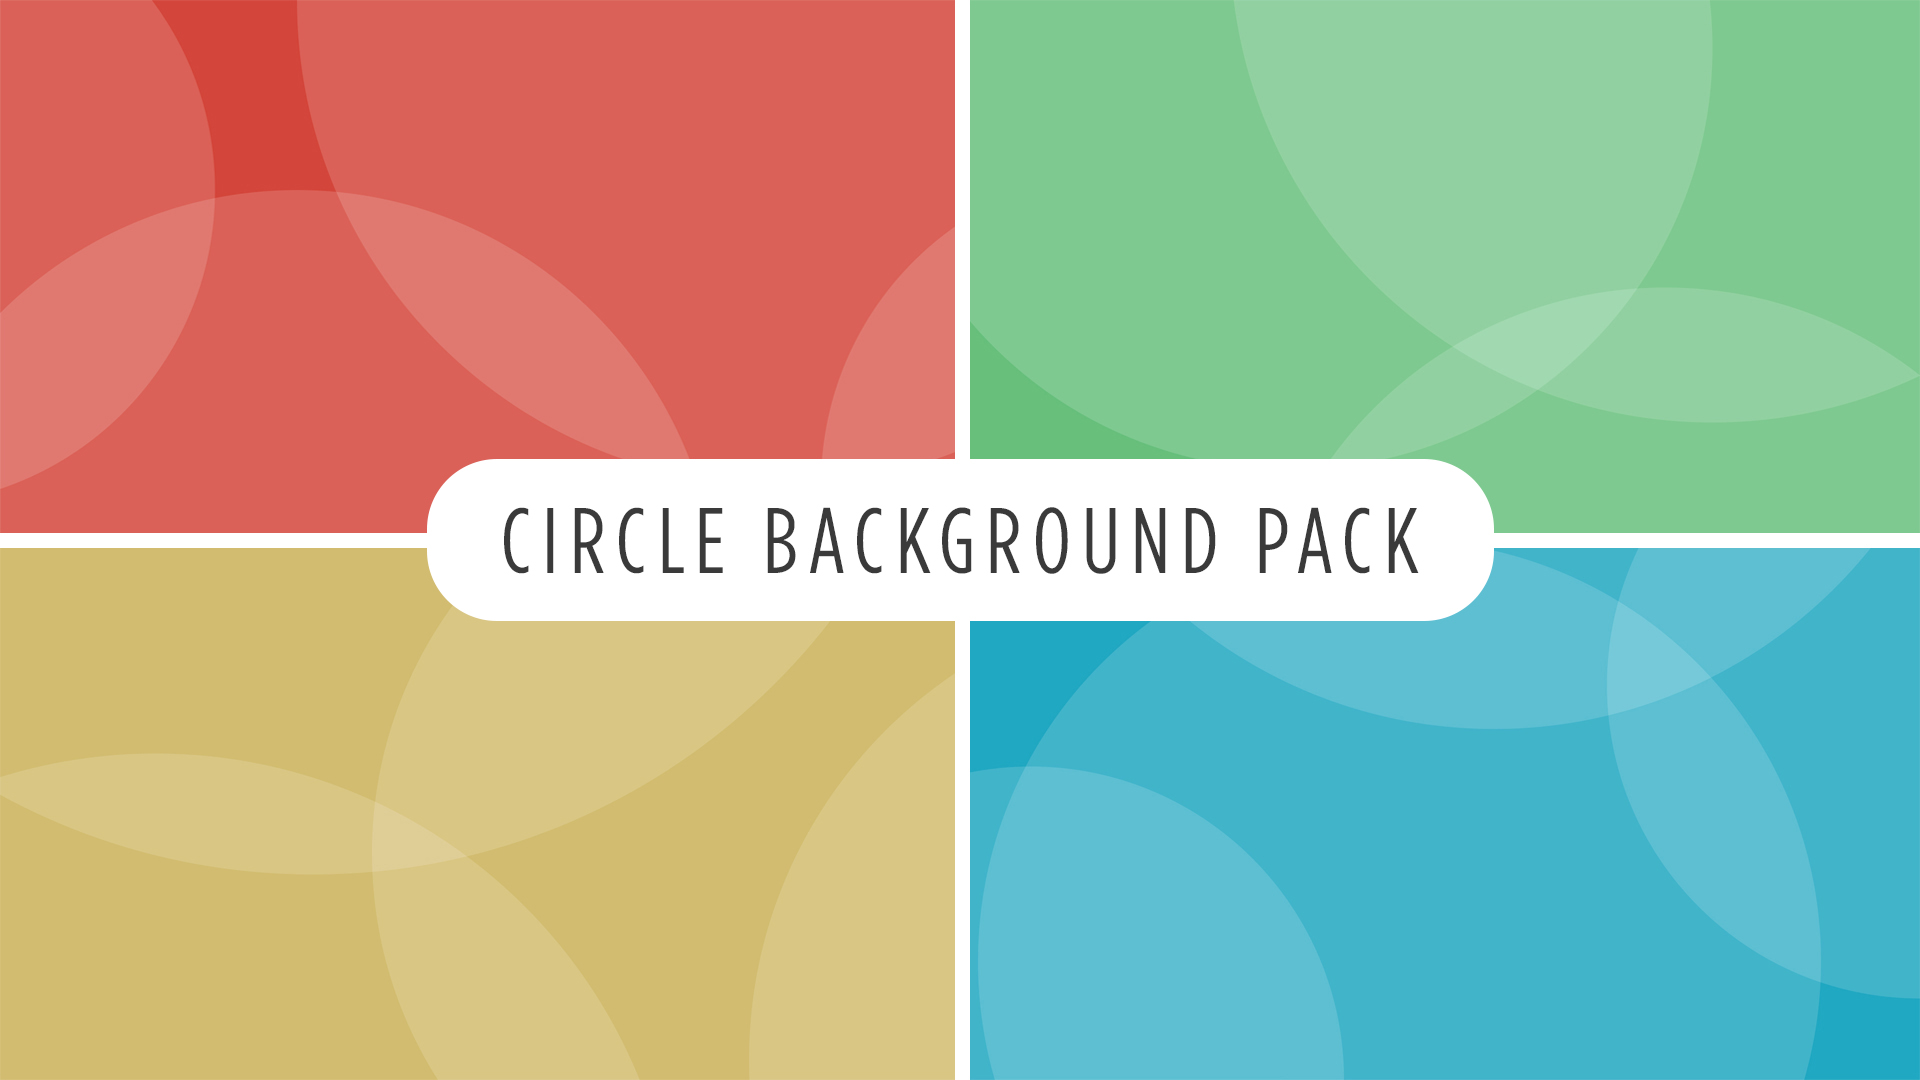 Circle Background Pack